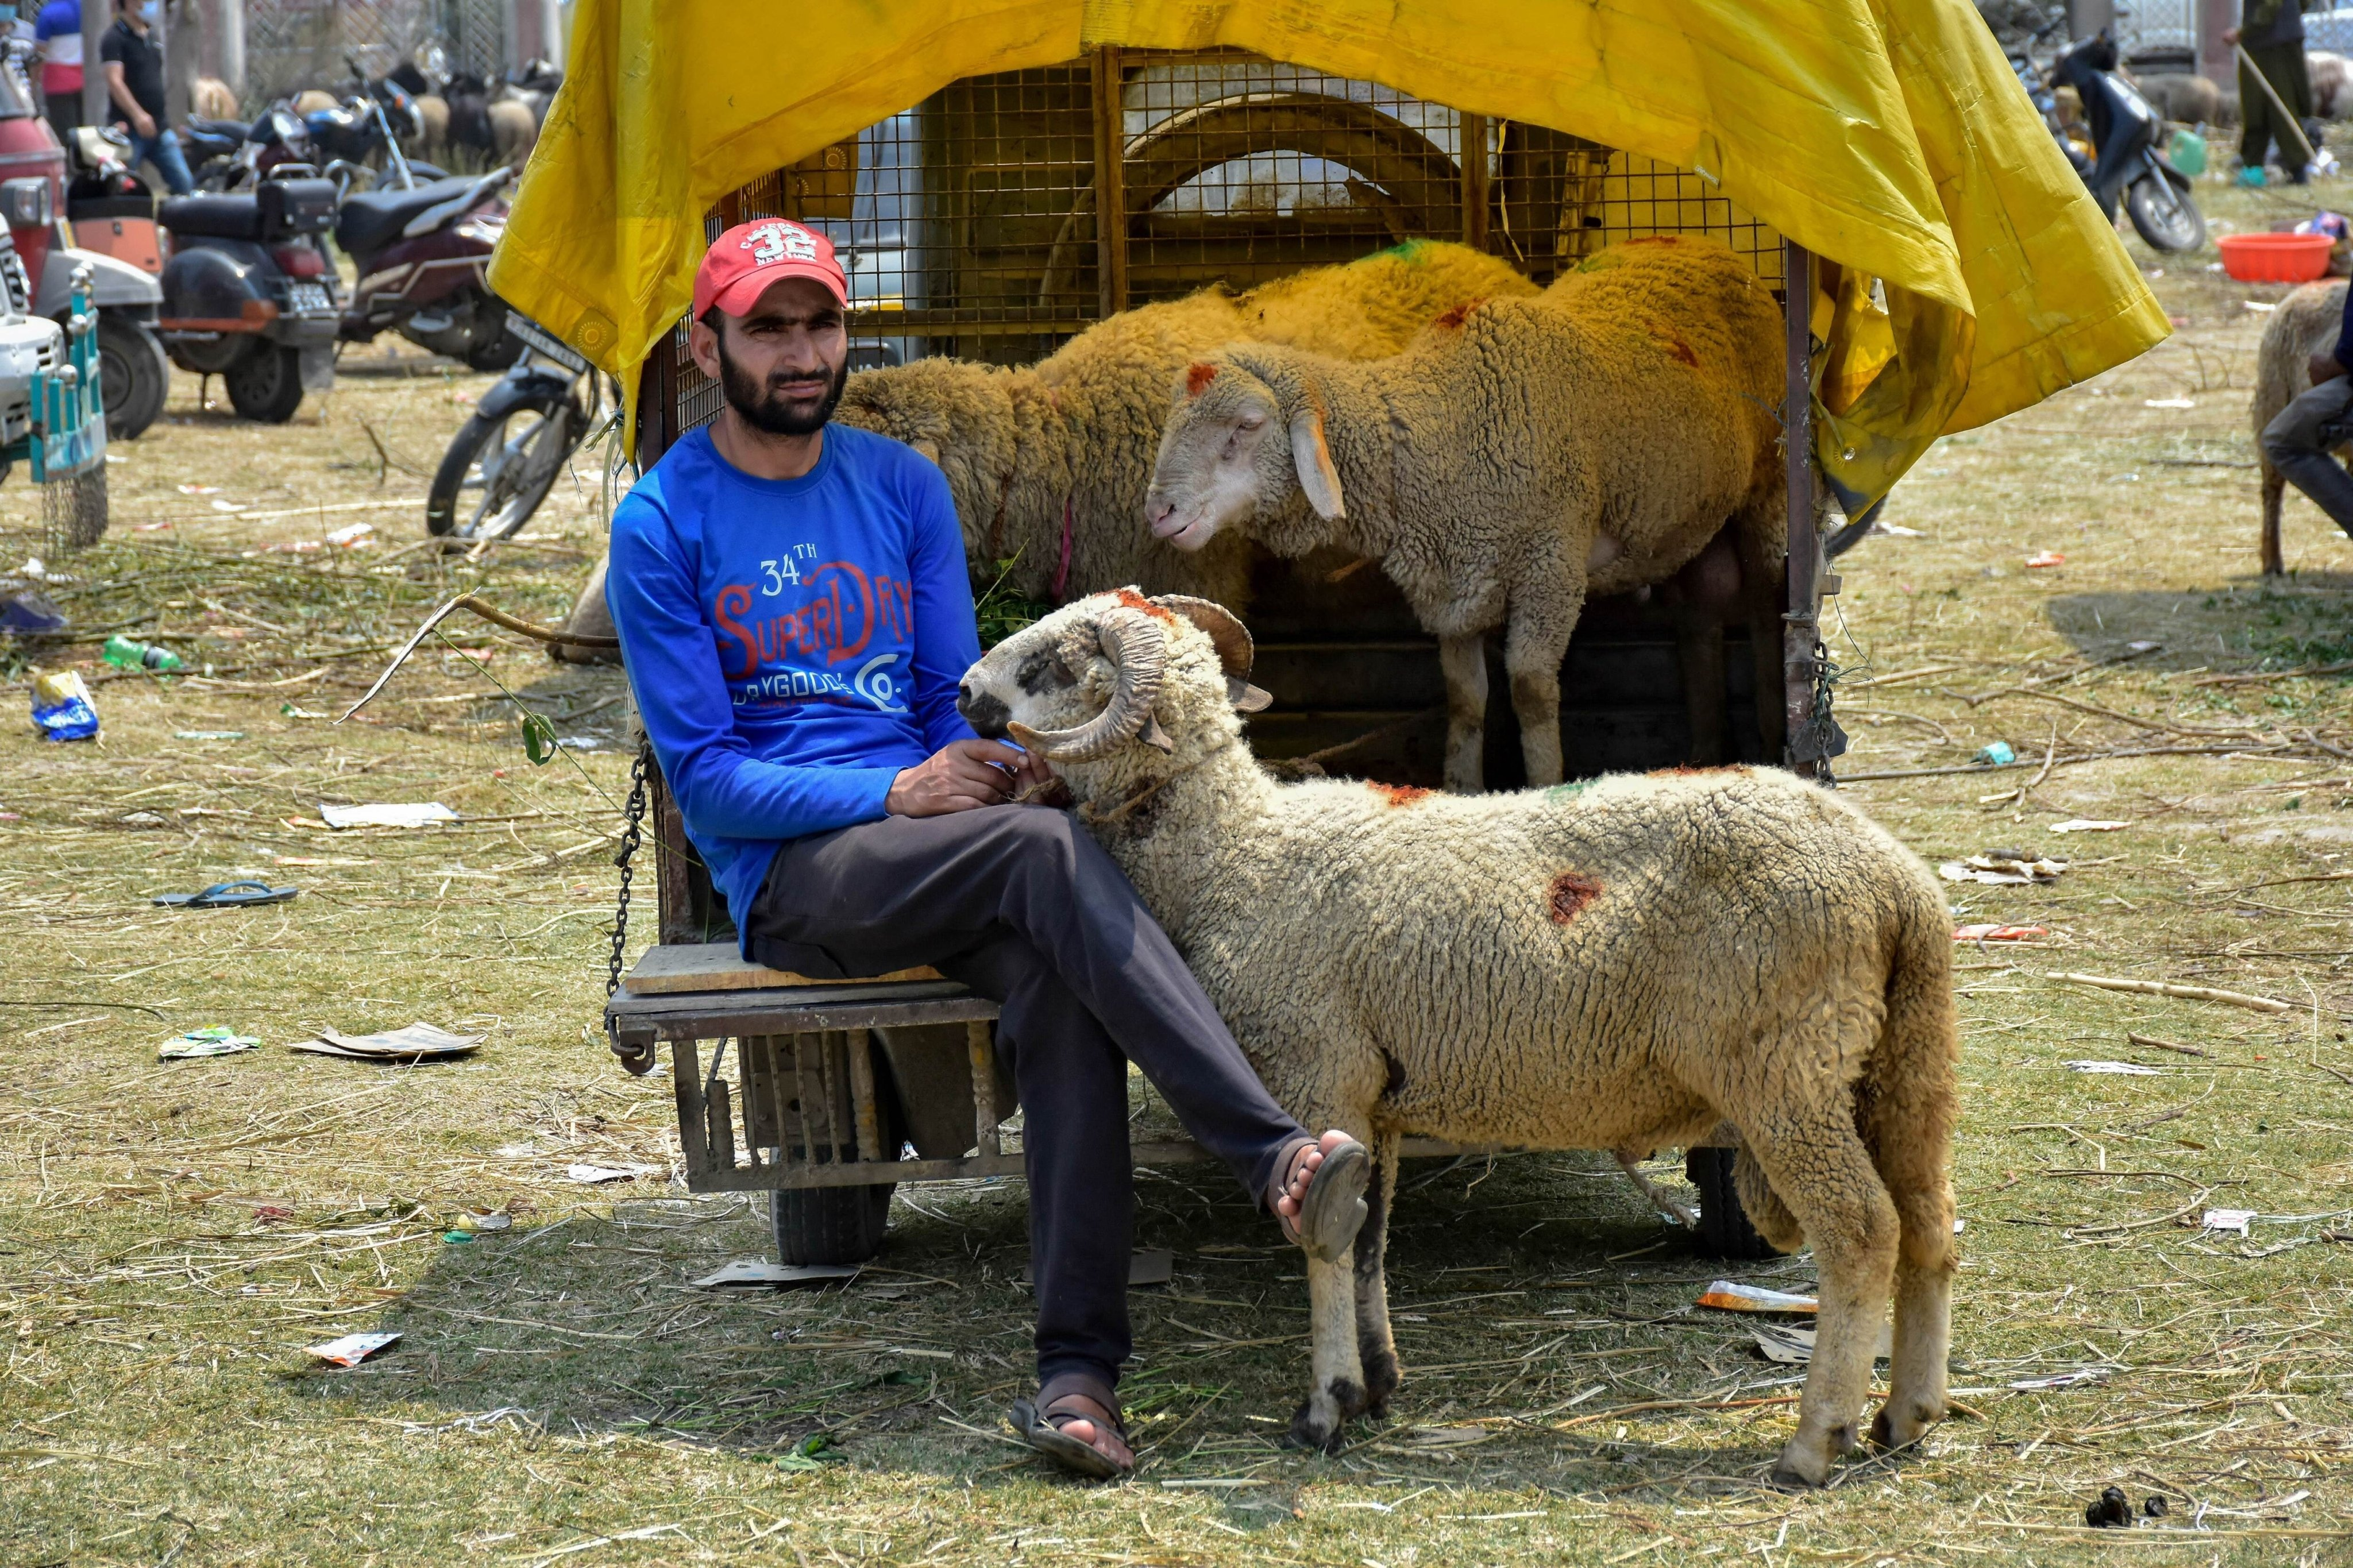 A Kashmiri livestock trader waits for customers ahead of the